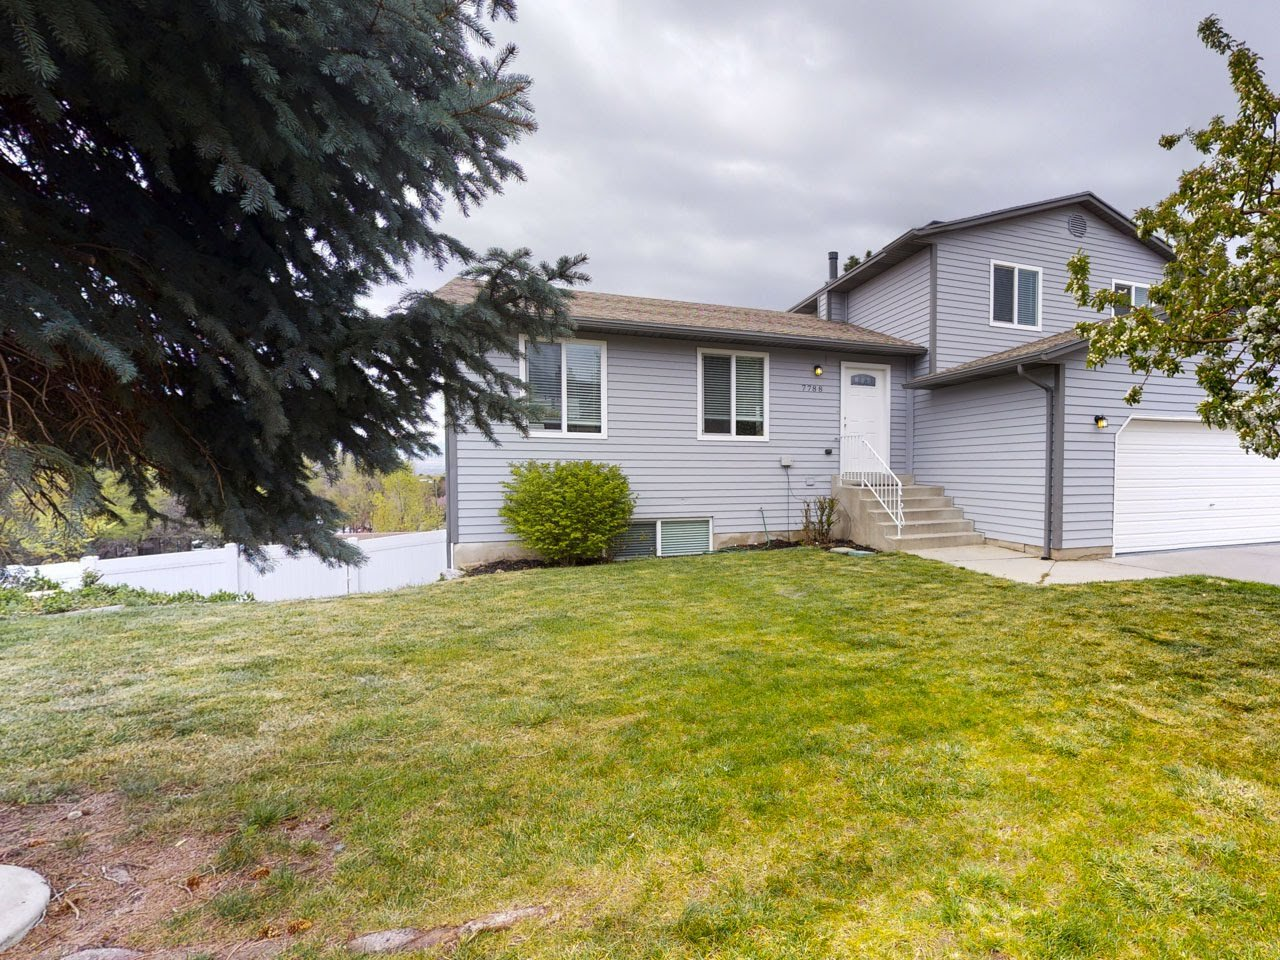 homes for sale in cottonwood heights, UT